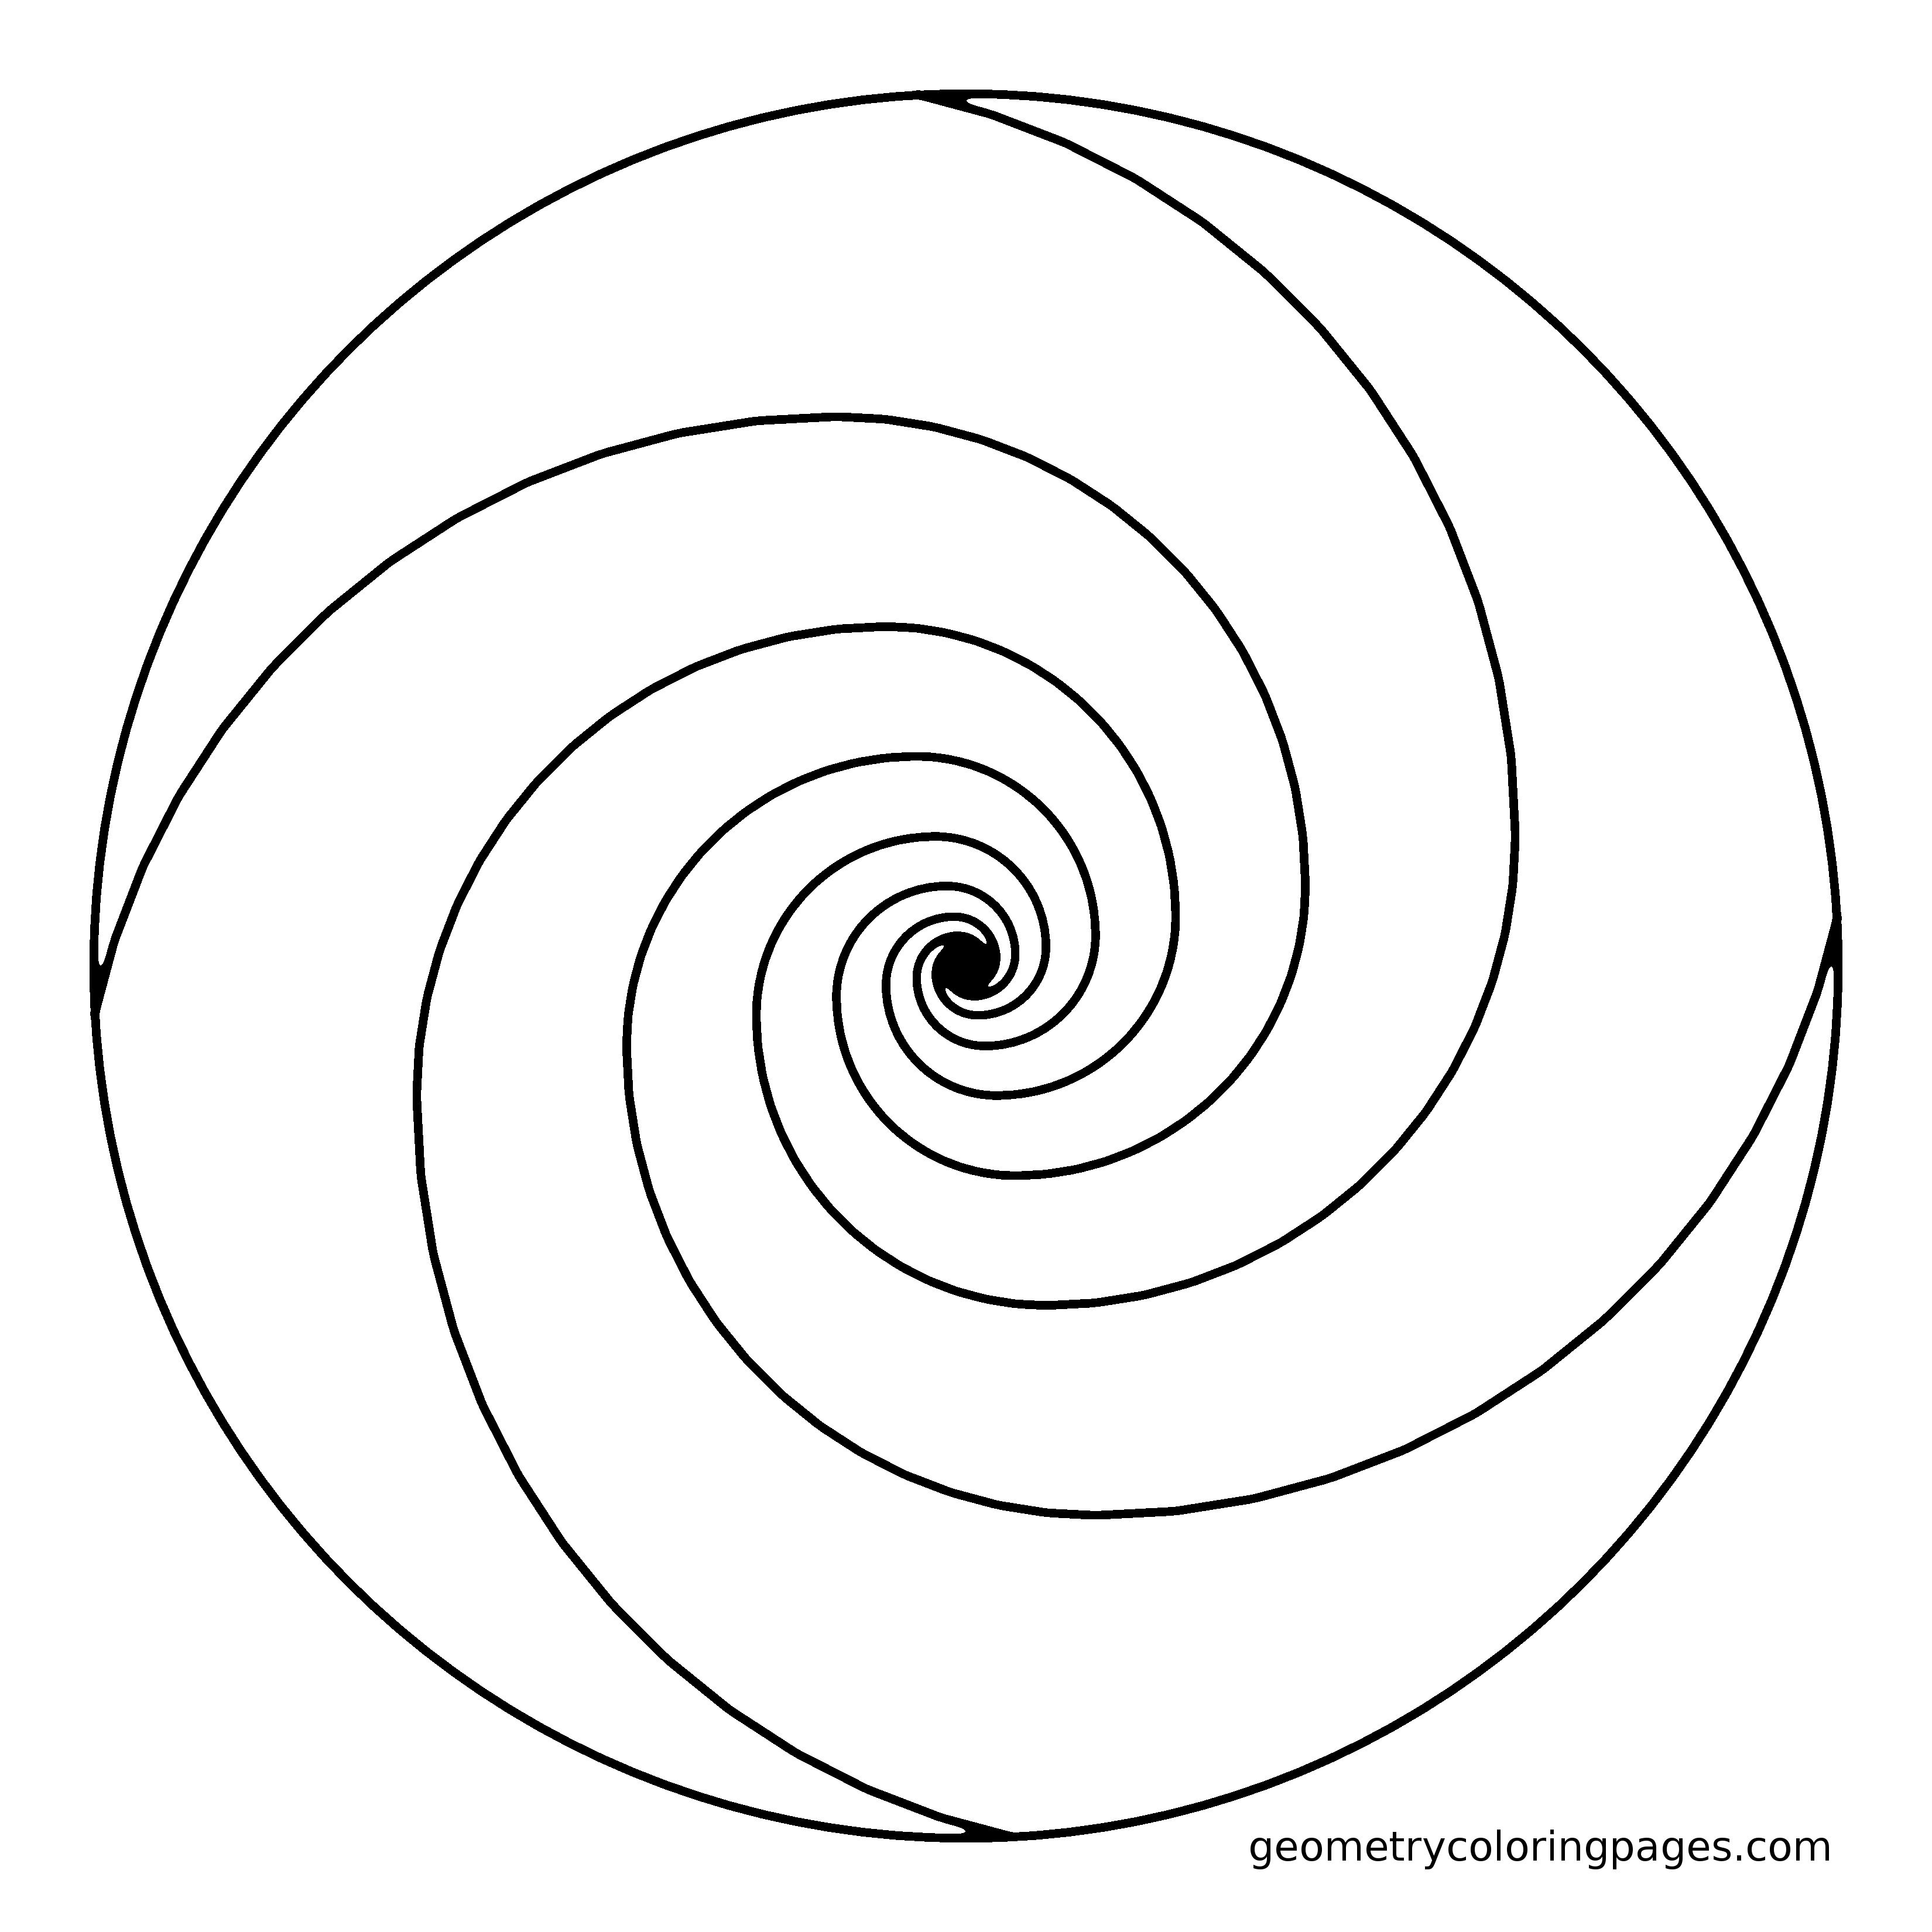 spiral coloring pages to print | Viewing Gallery For - Geometric Shapes Coloring Pages ...